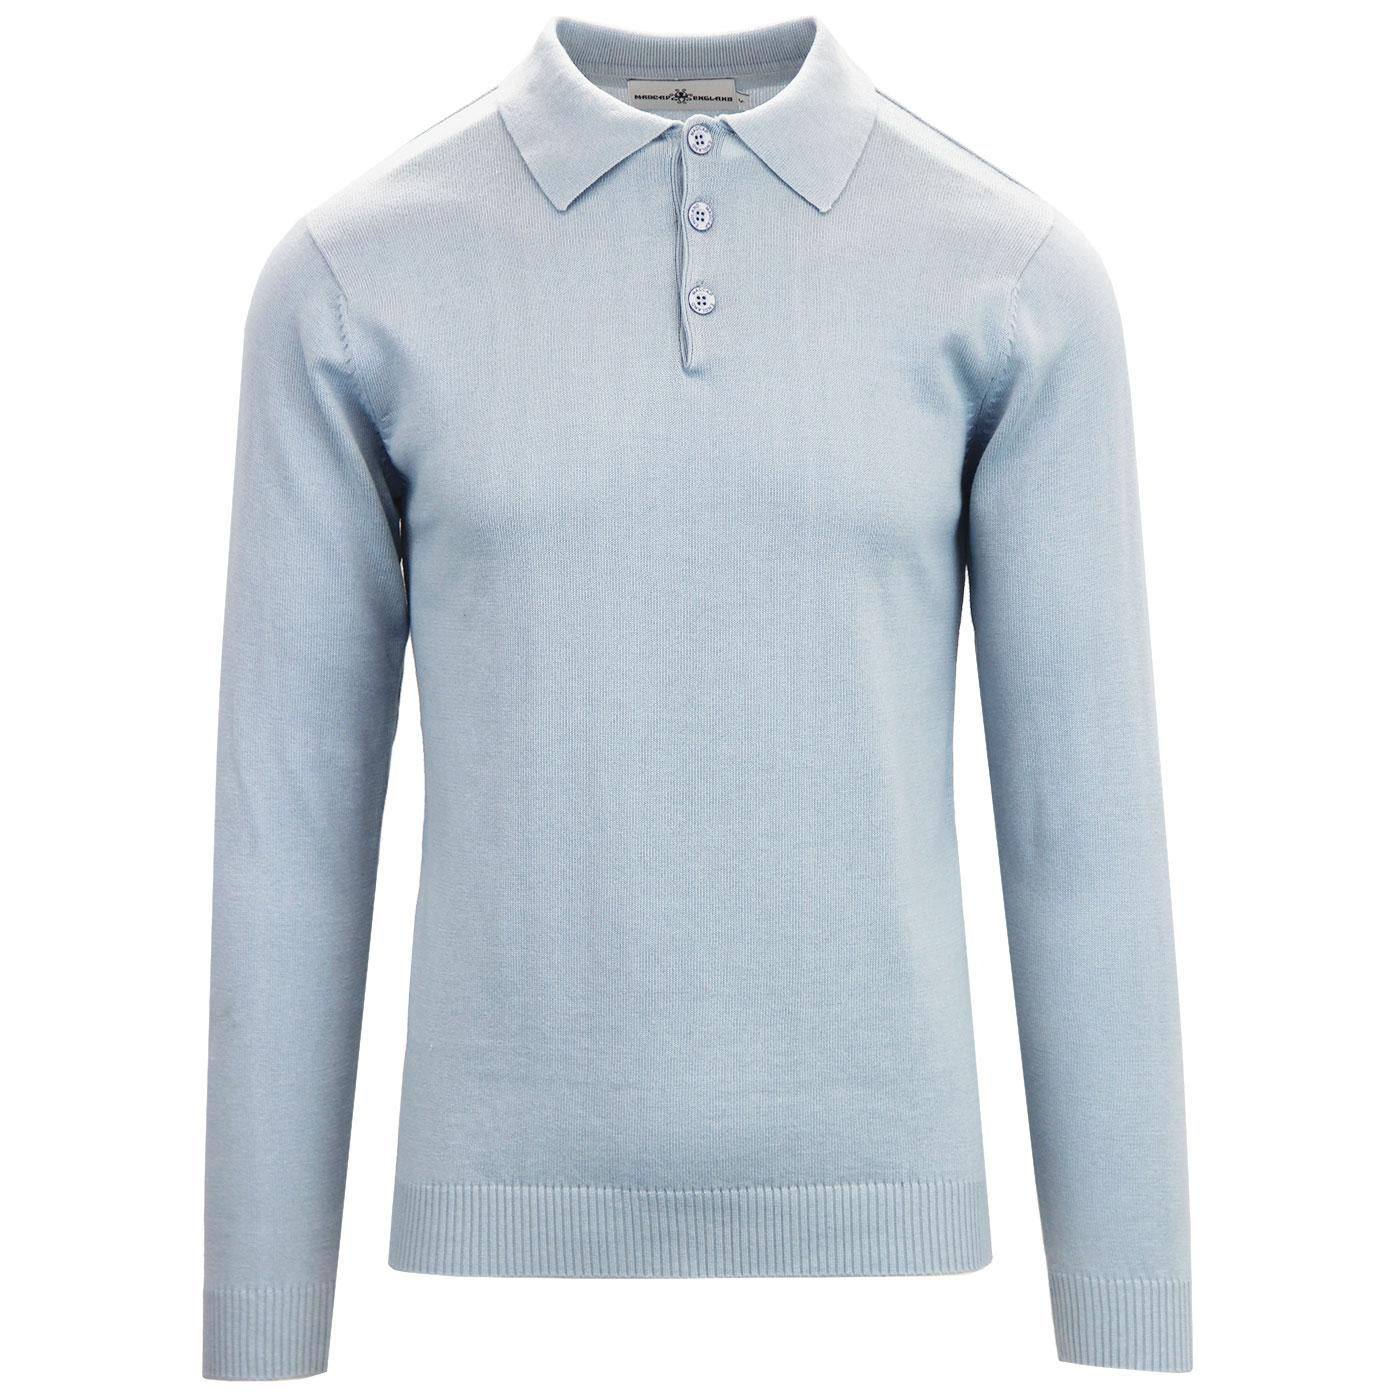 Madcap England Brando Men's 1960s Mod Knitted Polo Shirt in Blue Fog